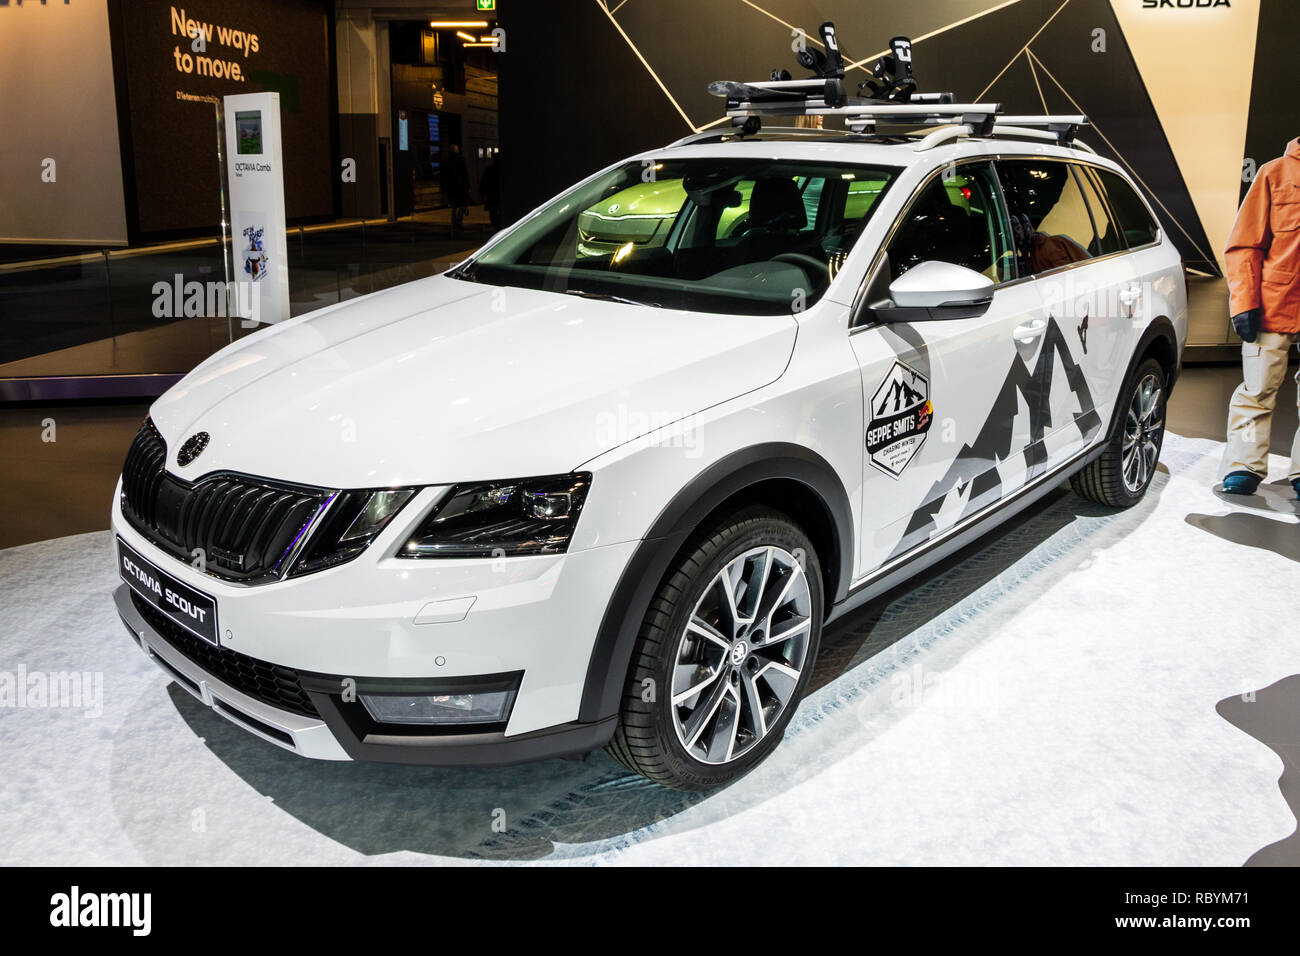 Brussels Jan 10 2018 Skoda Octavia Scout Wagon Car Showcased At The Brussels Expo Autosalon Motor Show Stock Photo Alamy